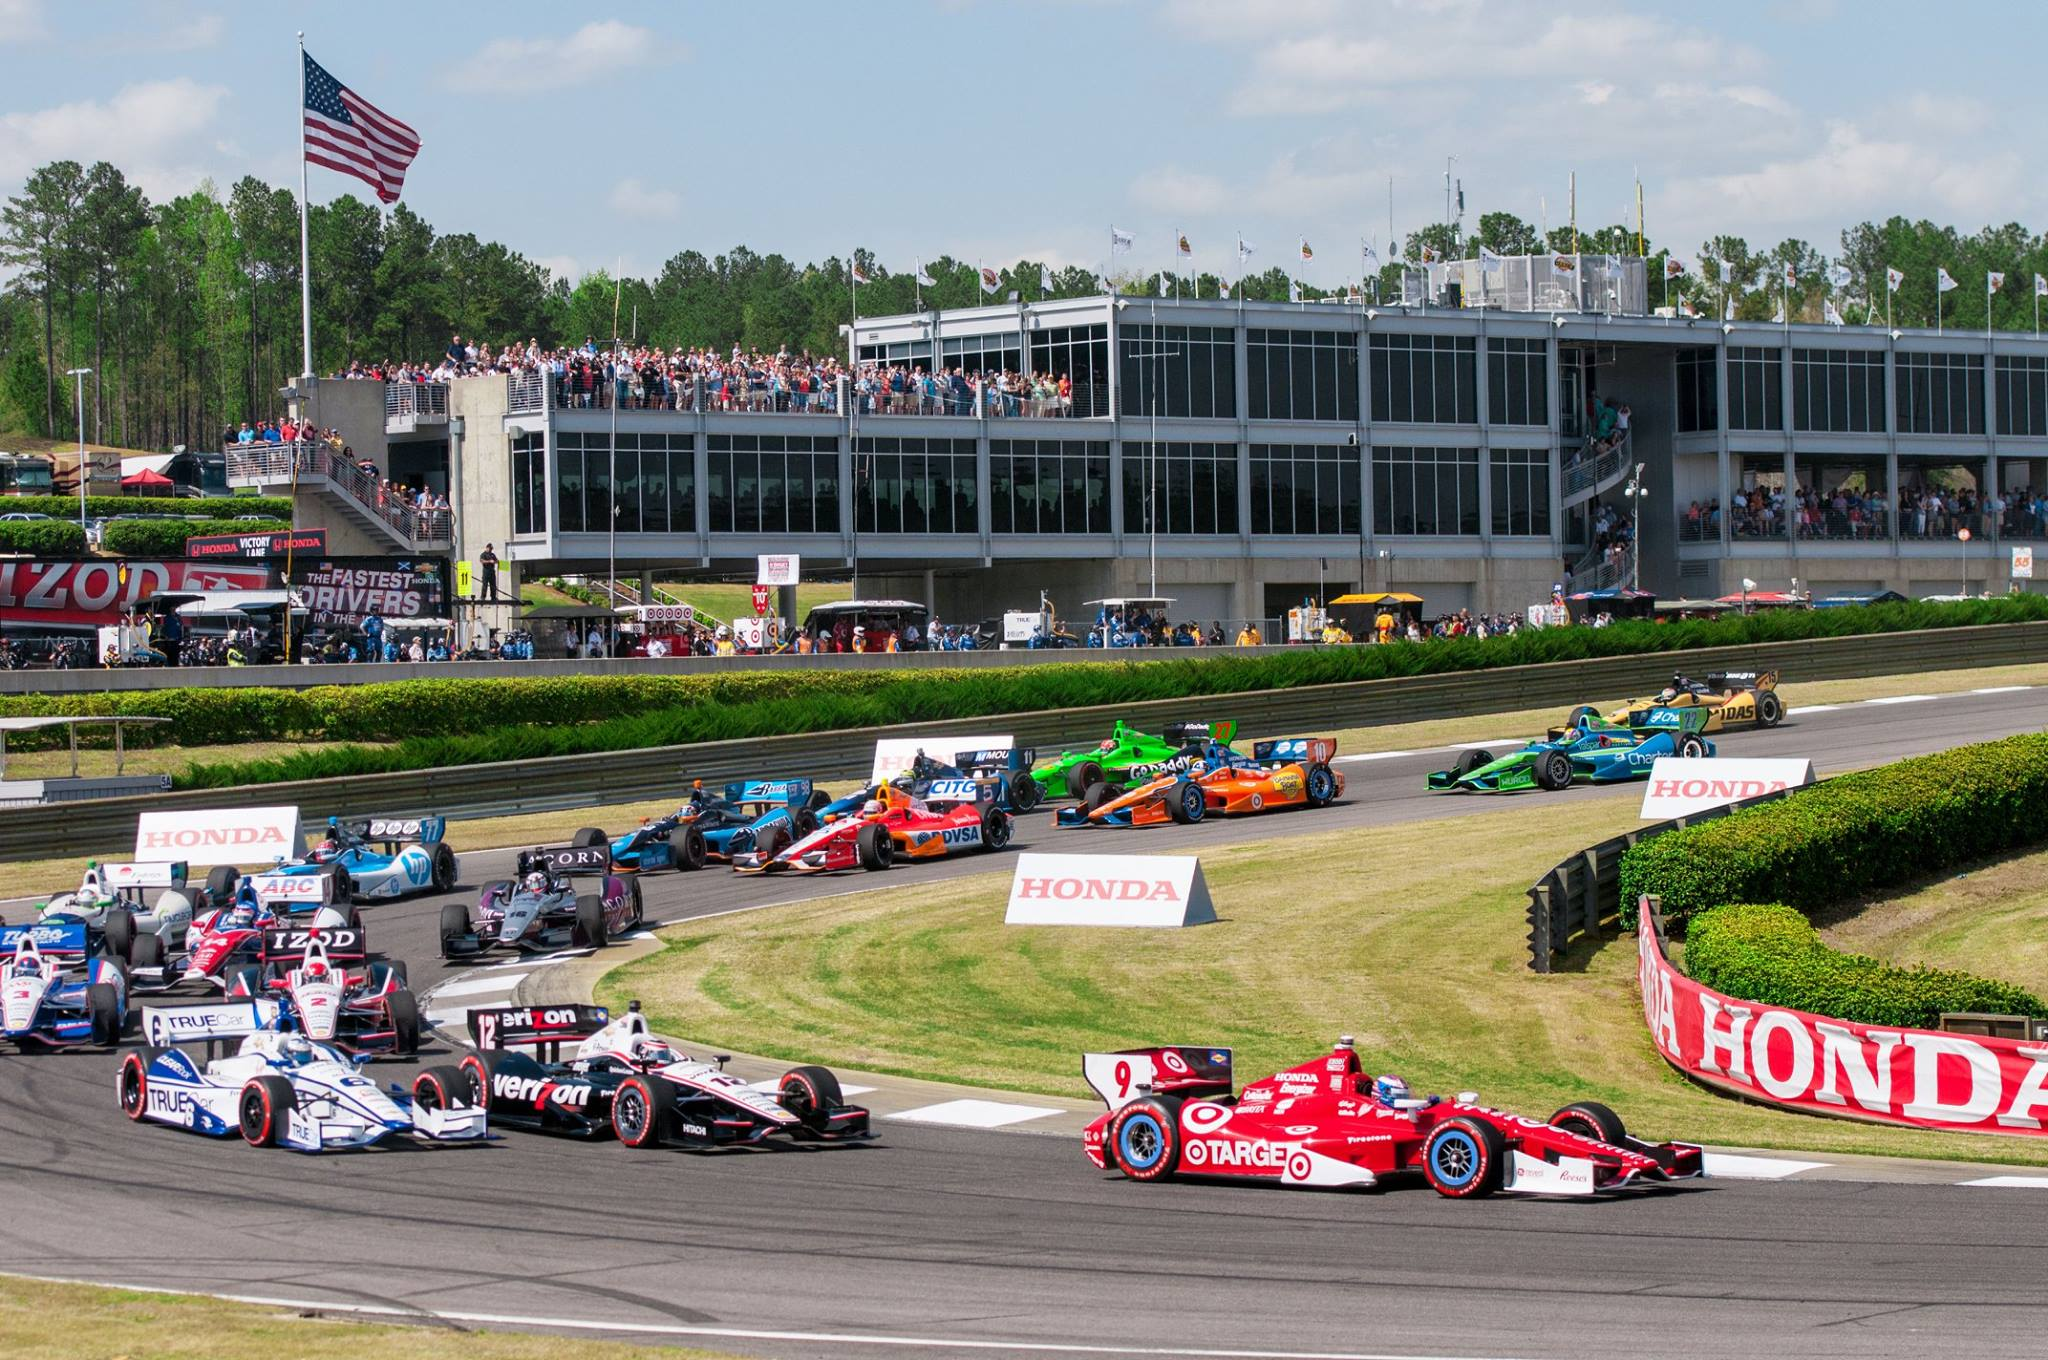 Barber Motorsports Park >> Run The Track At The First Ever Indy 5k Race At Barber Motorsports